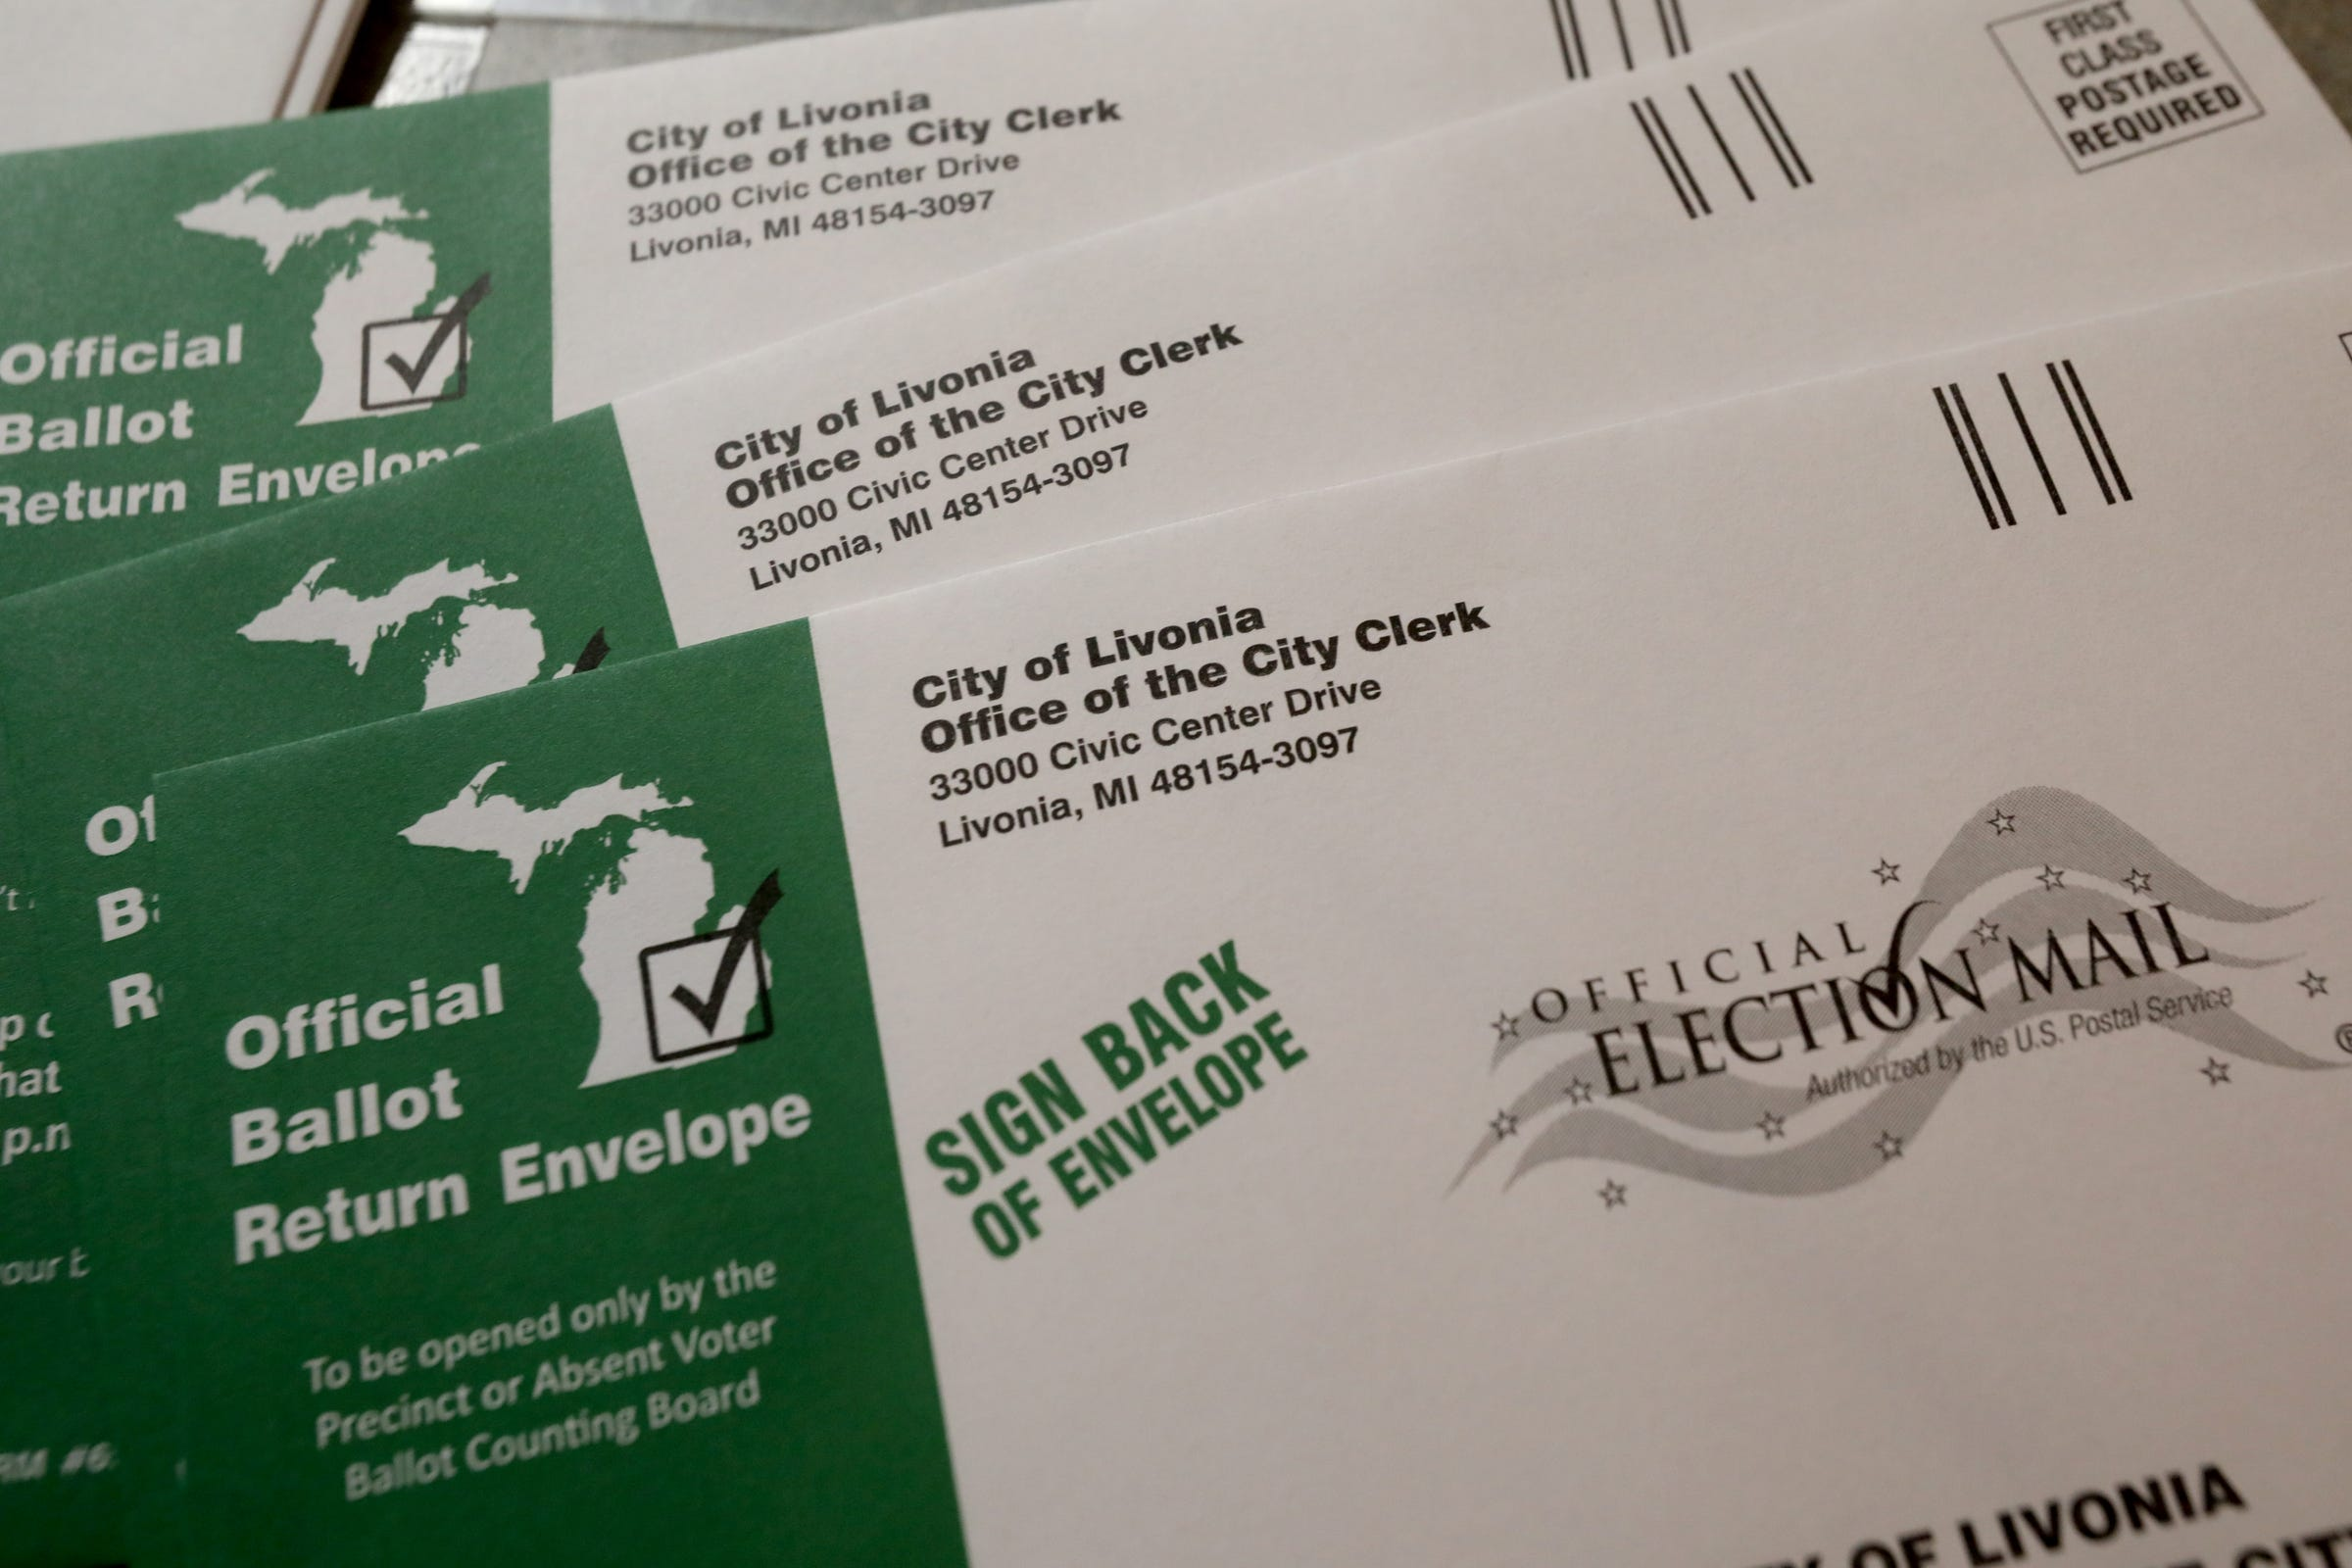 Change needed for November election absentee ballots...